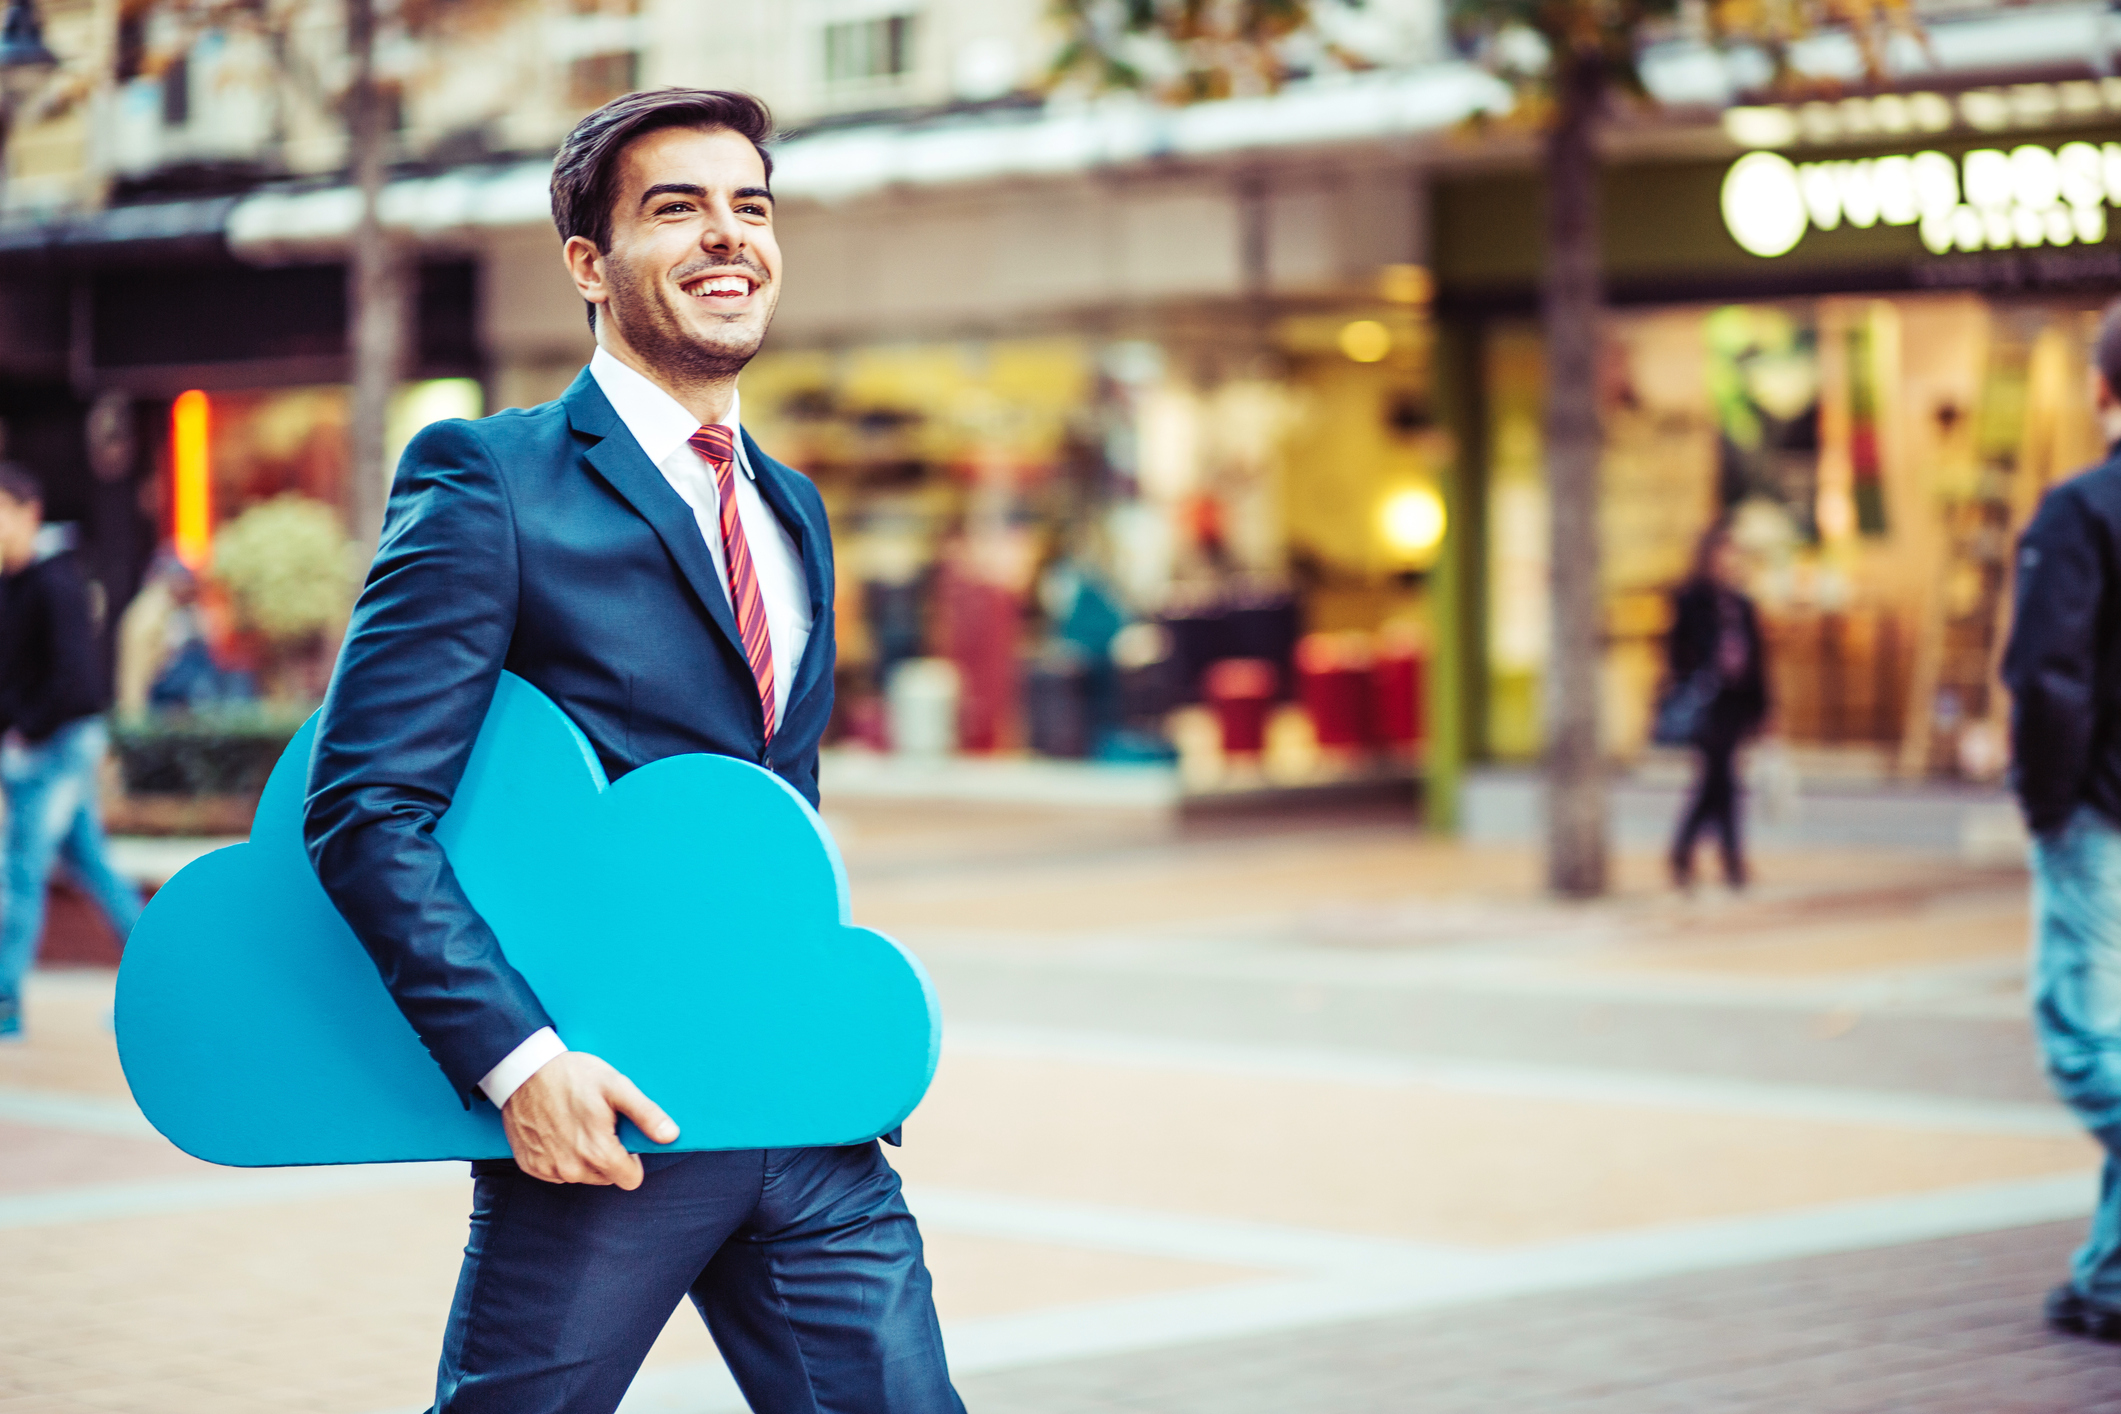 Young businessman walking on the street carrying a big blue cloud